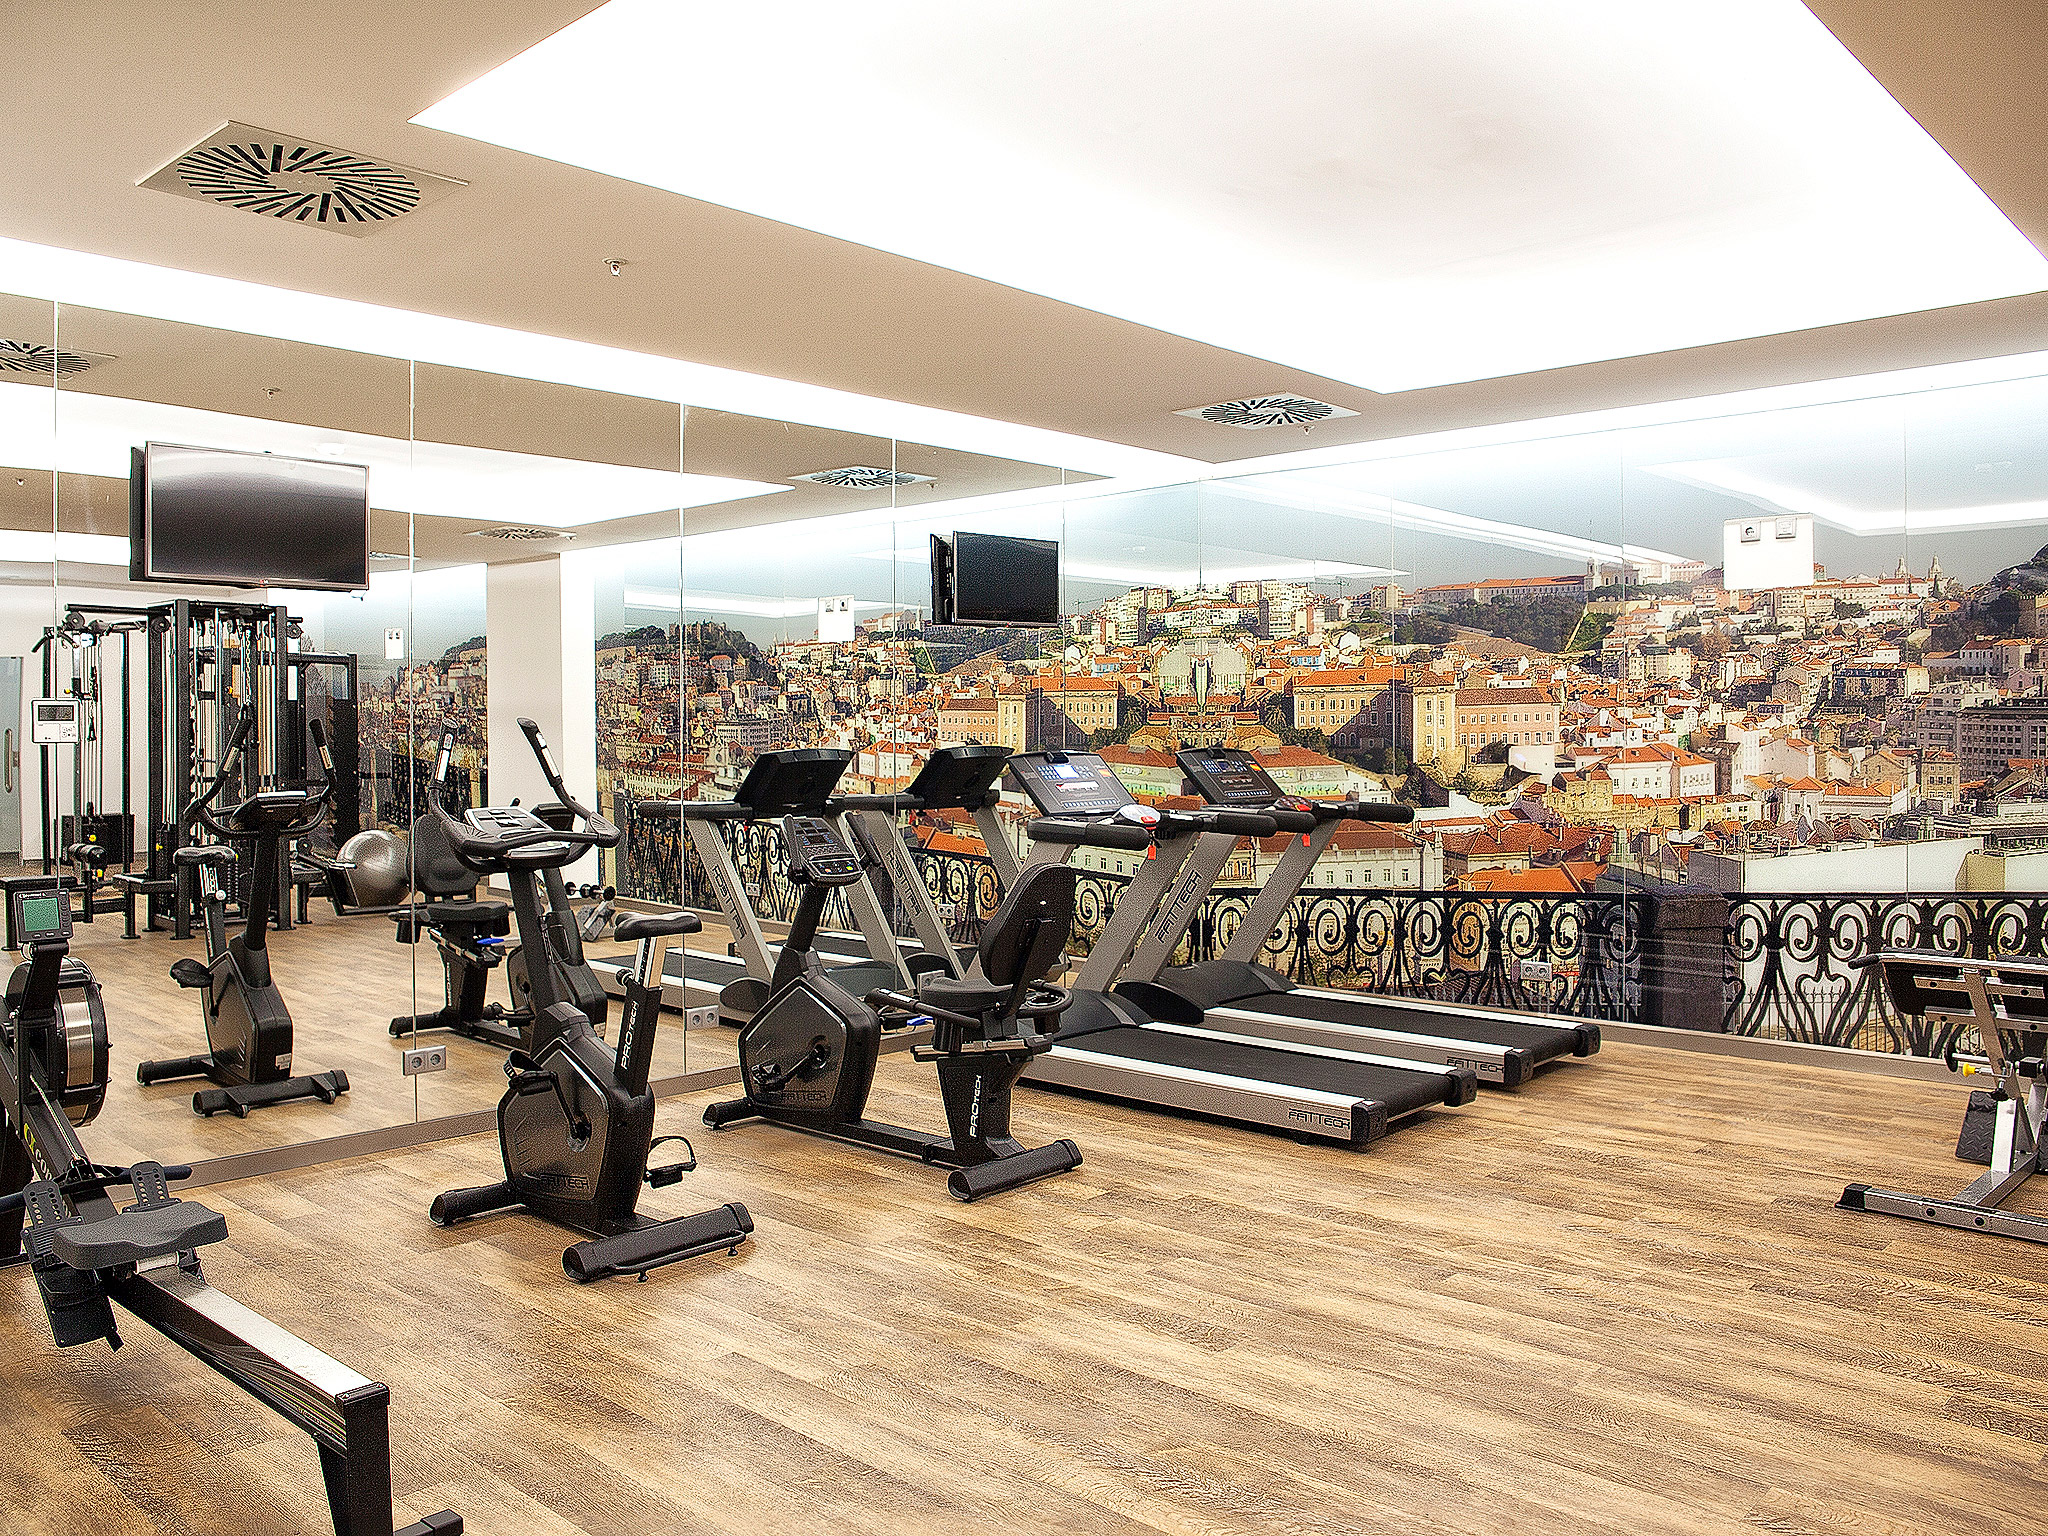 419/Photos-Lisboa/Services/Fitness-Center.jpg